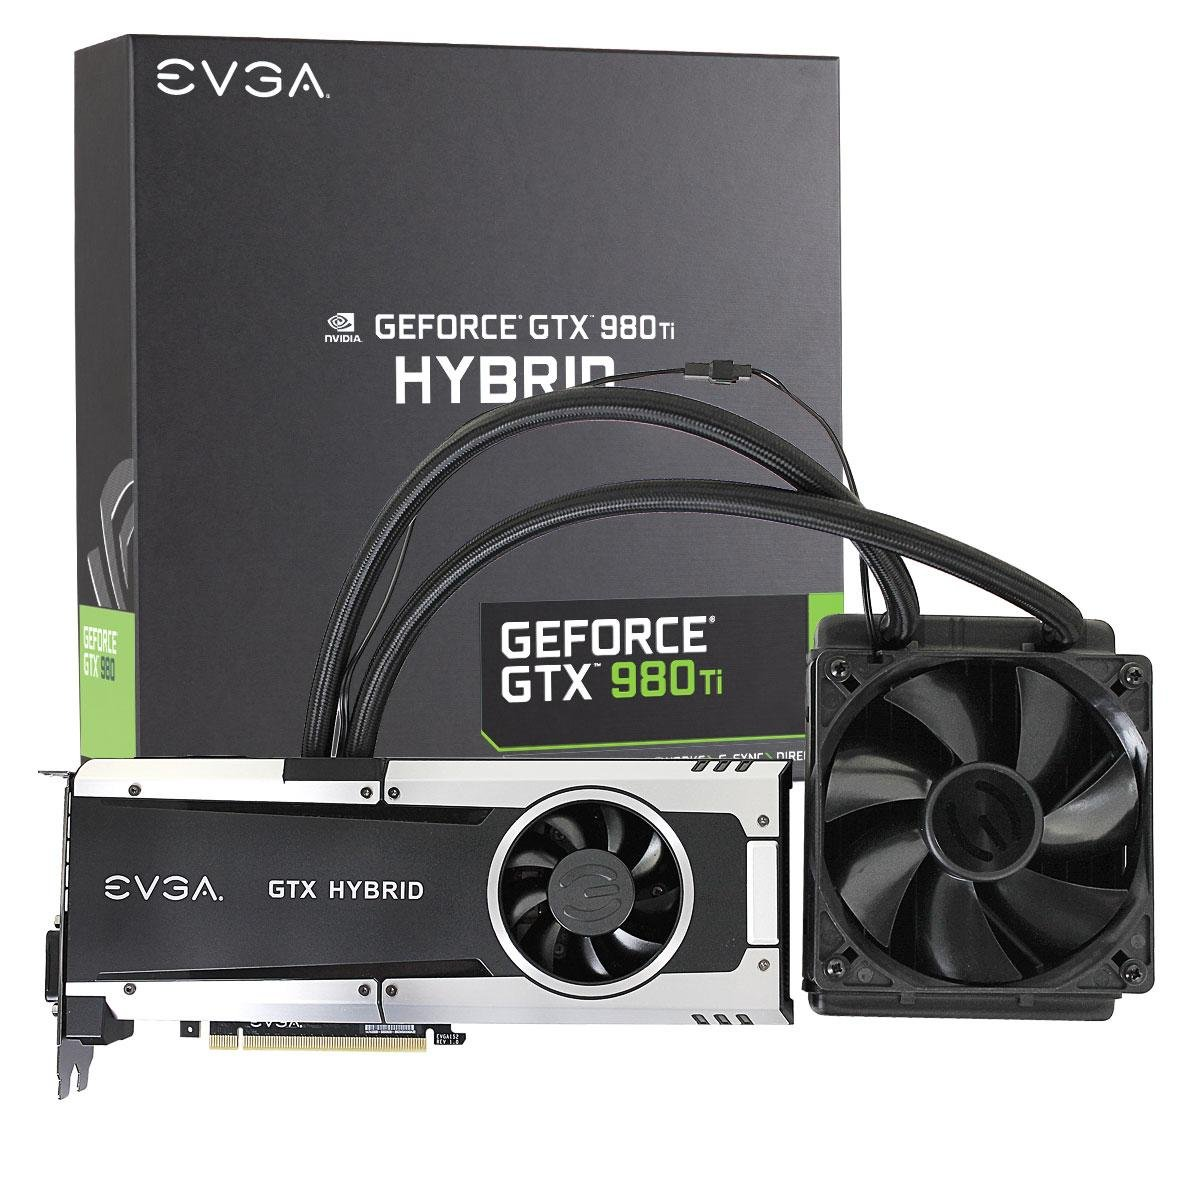 EVGA GeForce GTX 980 Ti 6GB HYBRID GAMING, ''All in One'' No Hassle Water Cooling, Just Plug and Play Graphics Card 06G-P4-1996-KR by EVGA (Image #1)